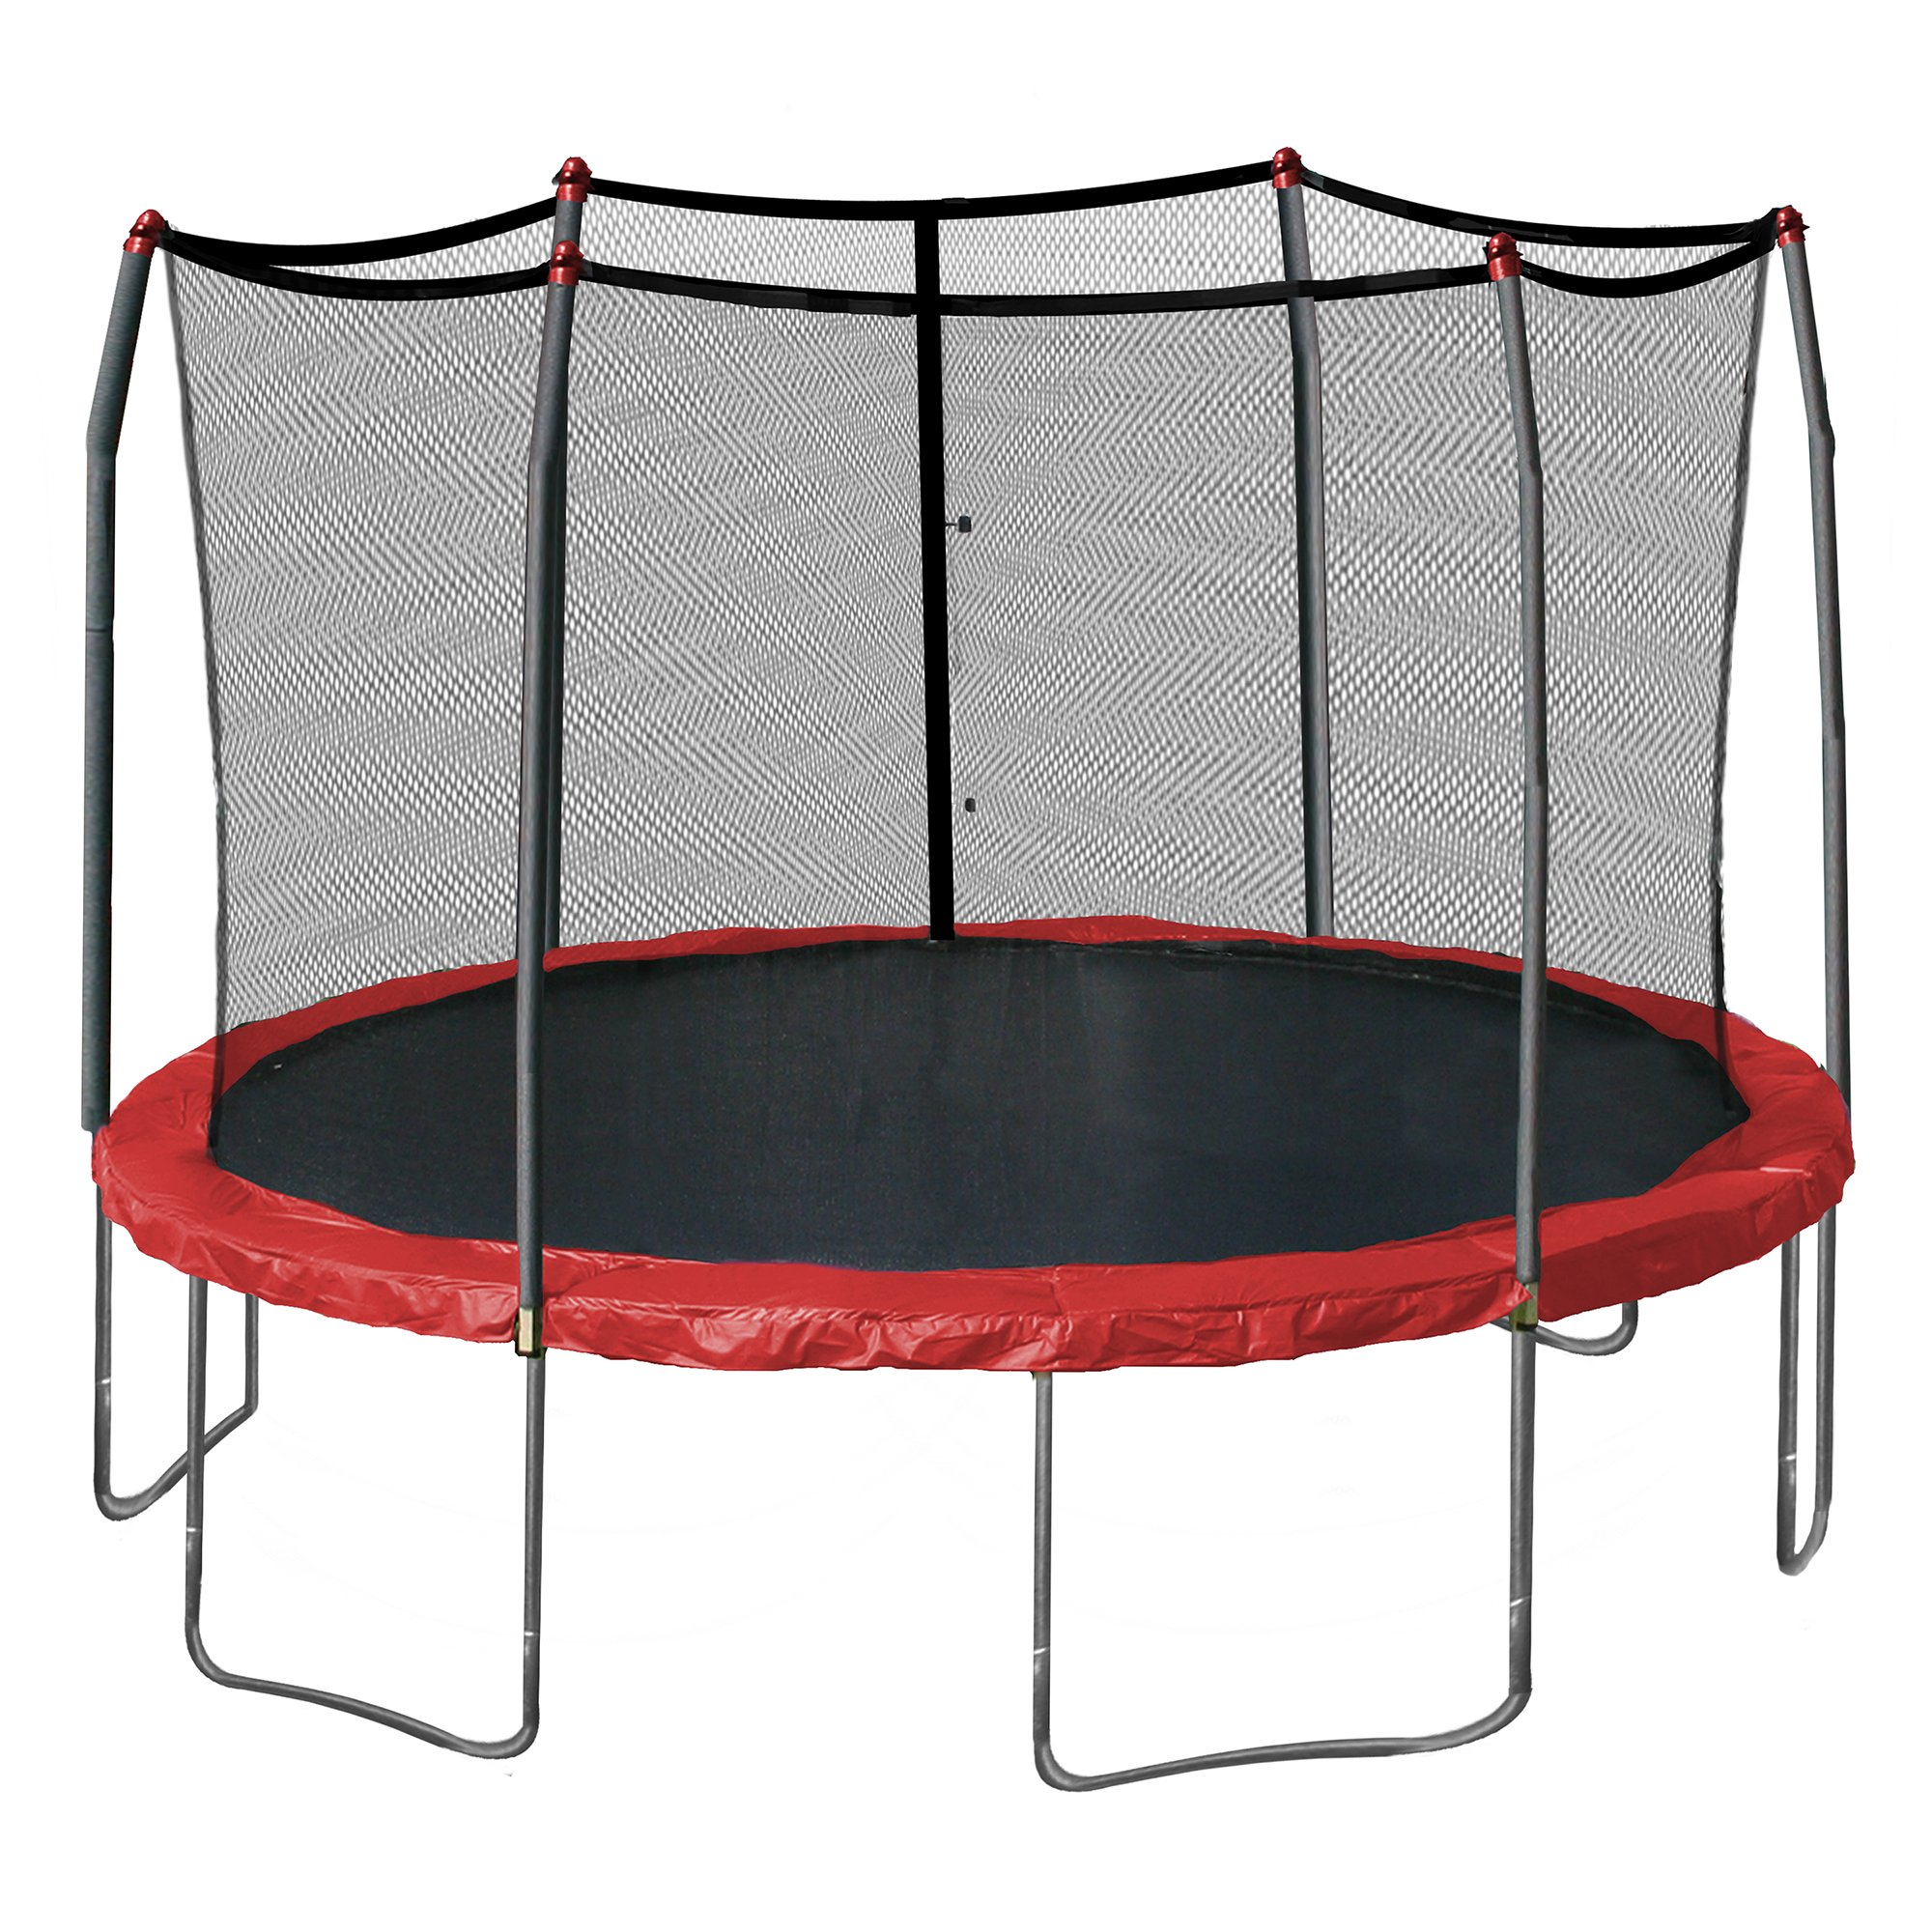 Skywalker Trampolines 15-Feet Round Trampoline, Red by Skywalker Trampolines